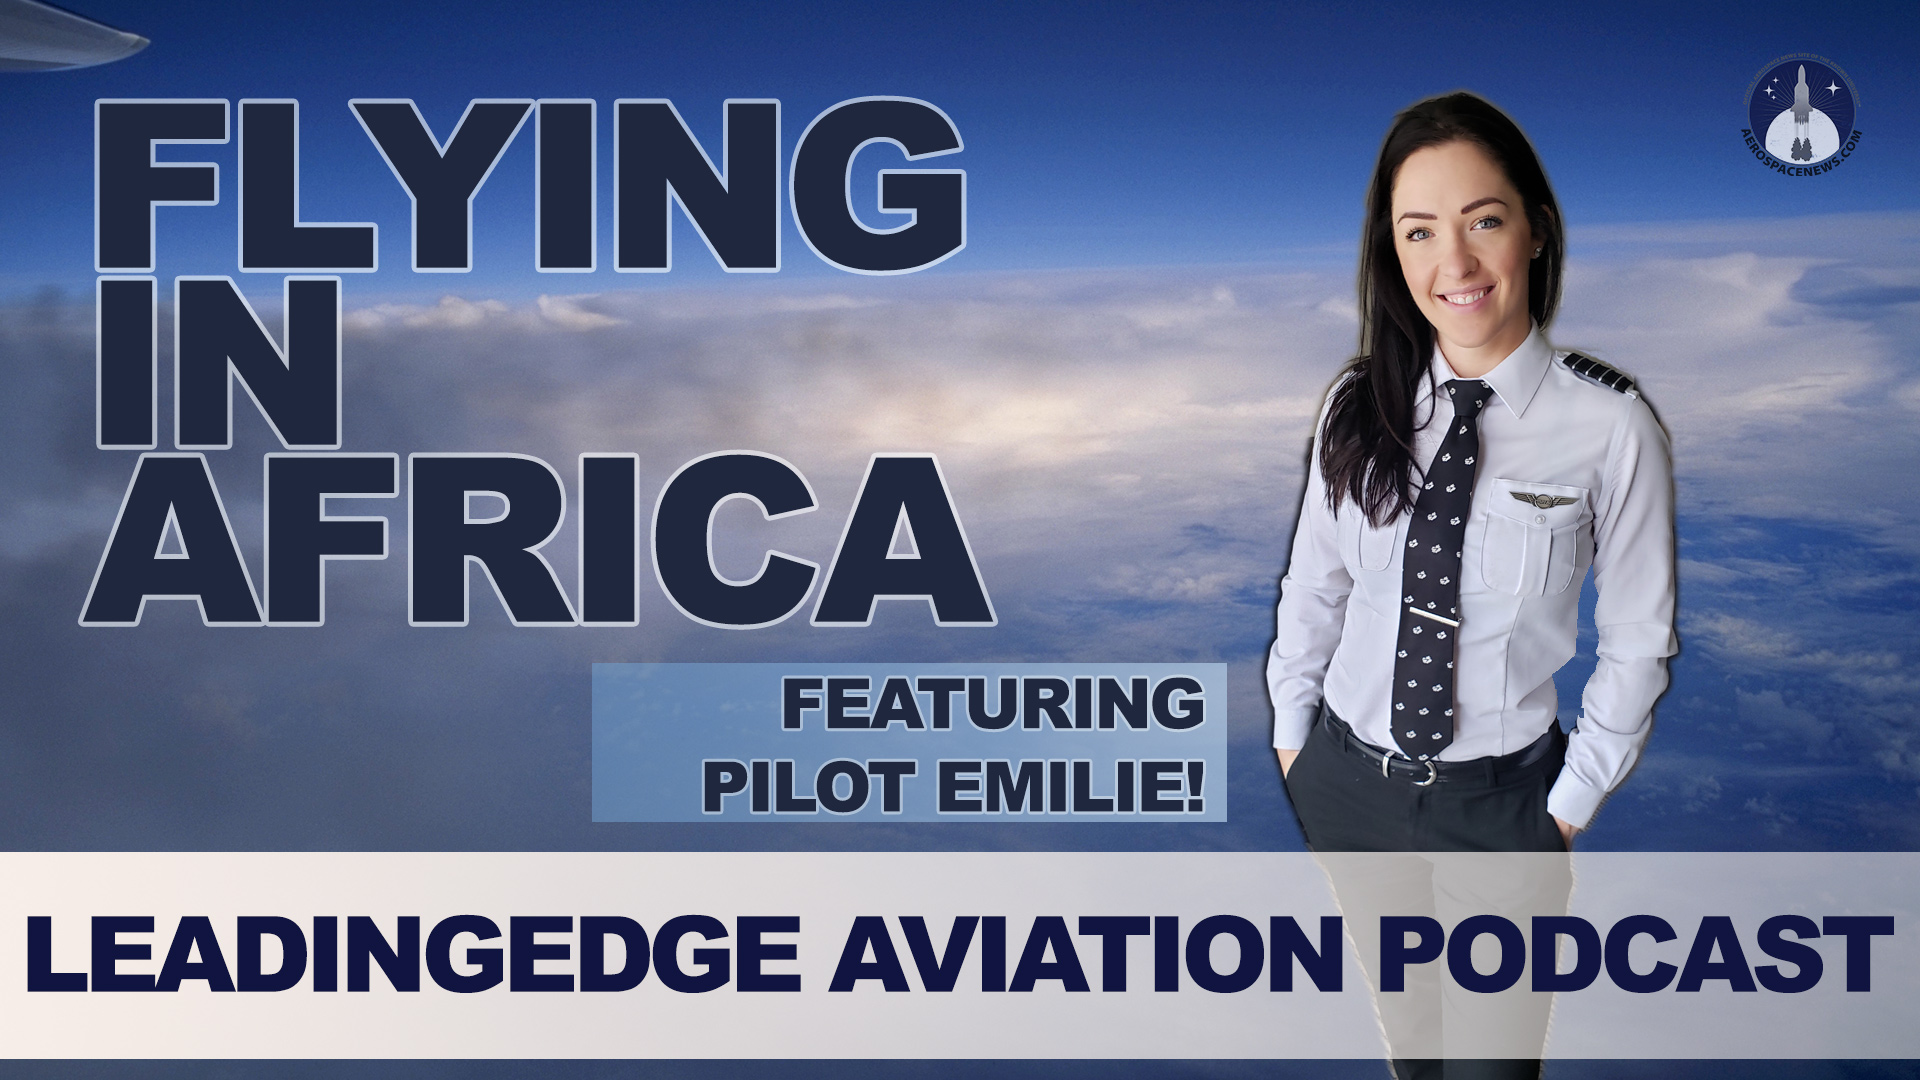 Pilot Emilie Flying In Africa Becoming A Pilot Feat PilotEmilie Aviation Podcast